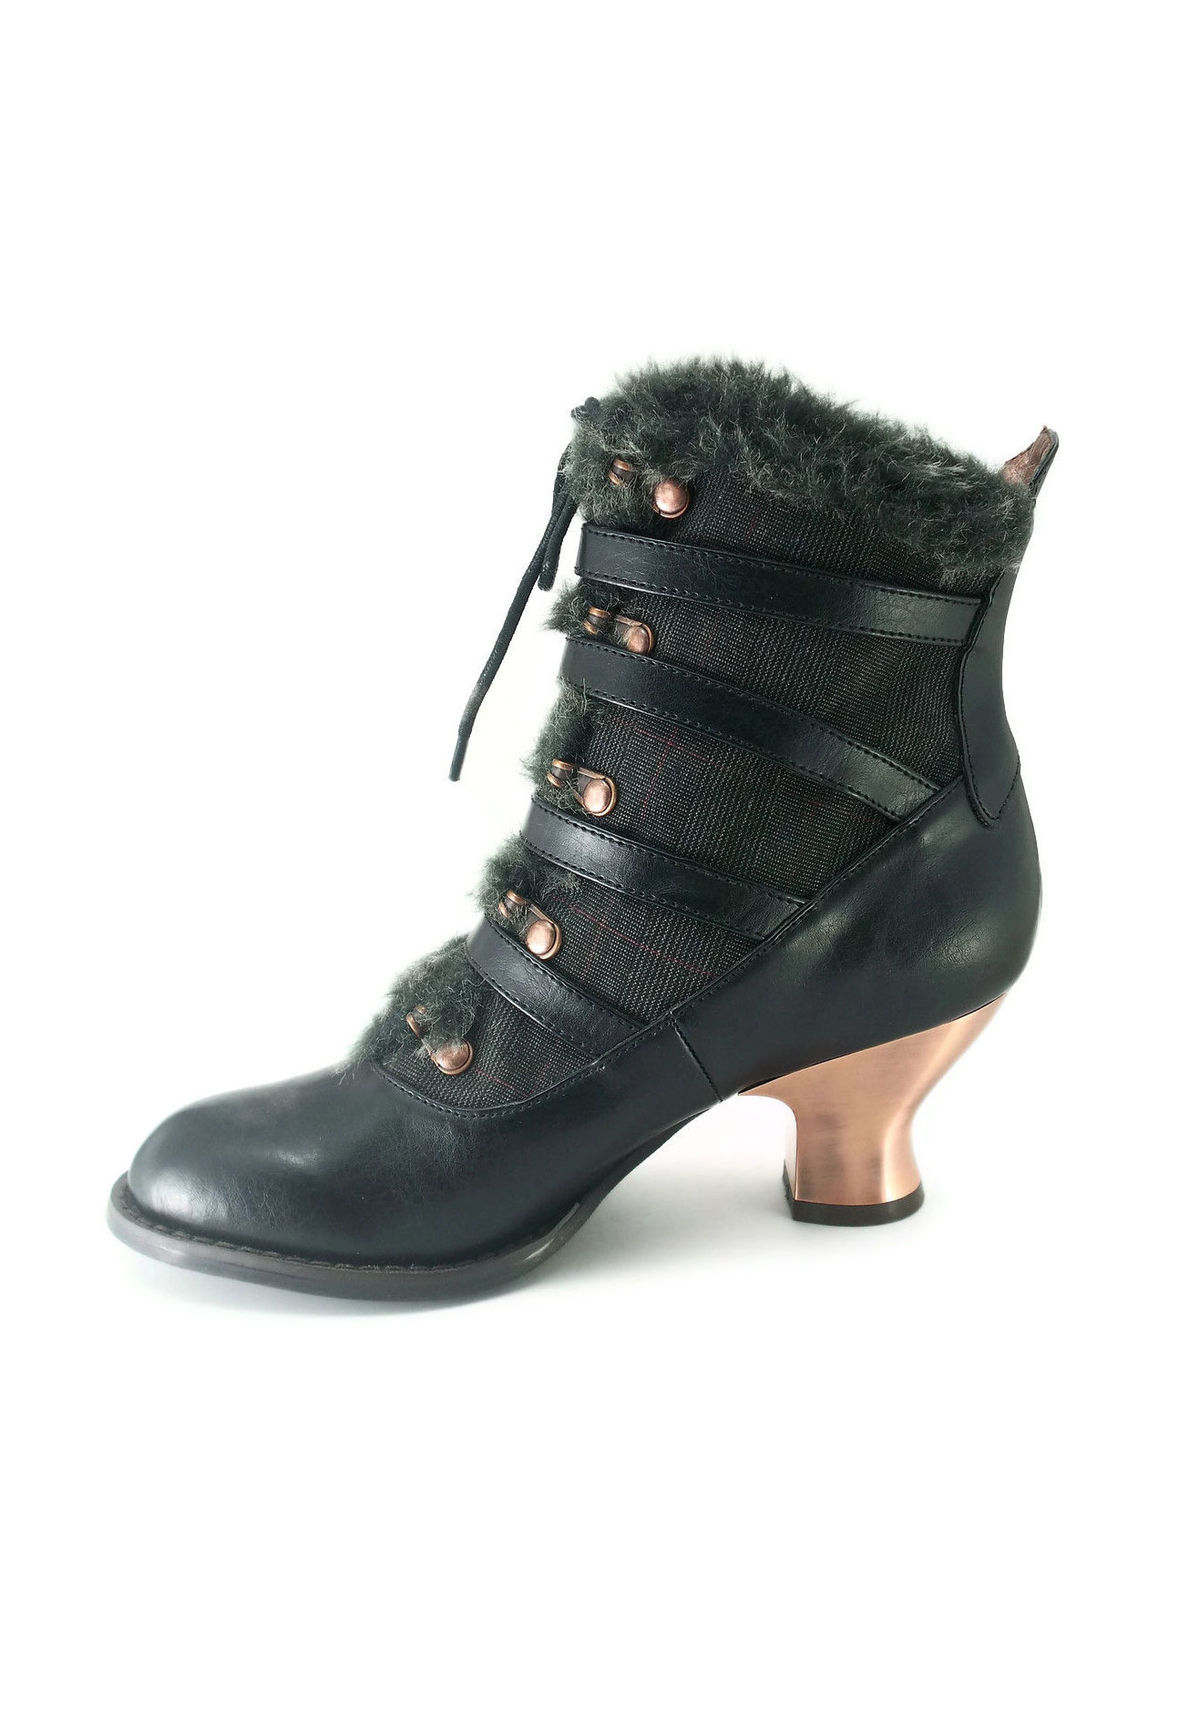 Hades NEPHELE Victorian Ankle Boots Boots Boots 830ed7